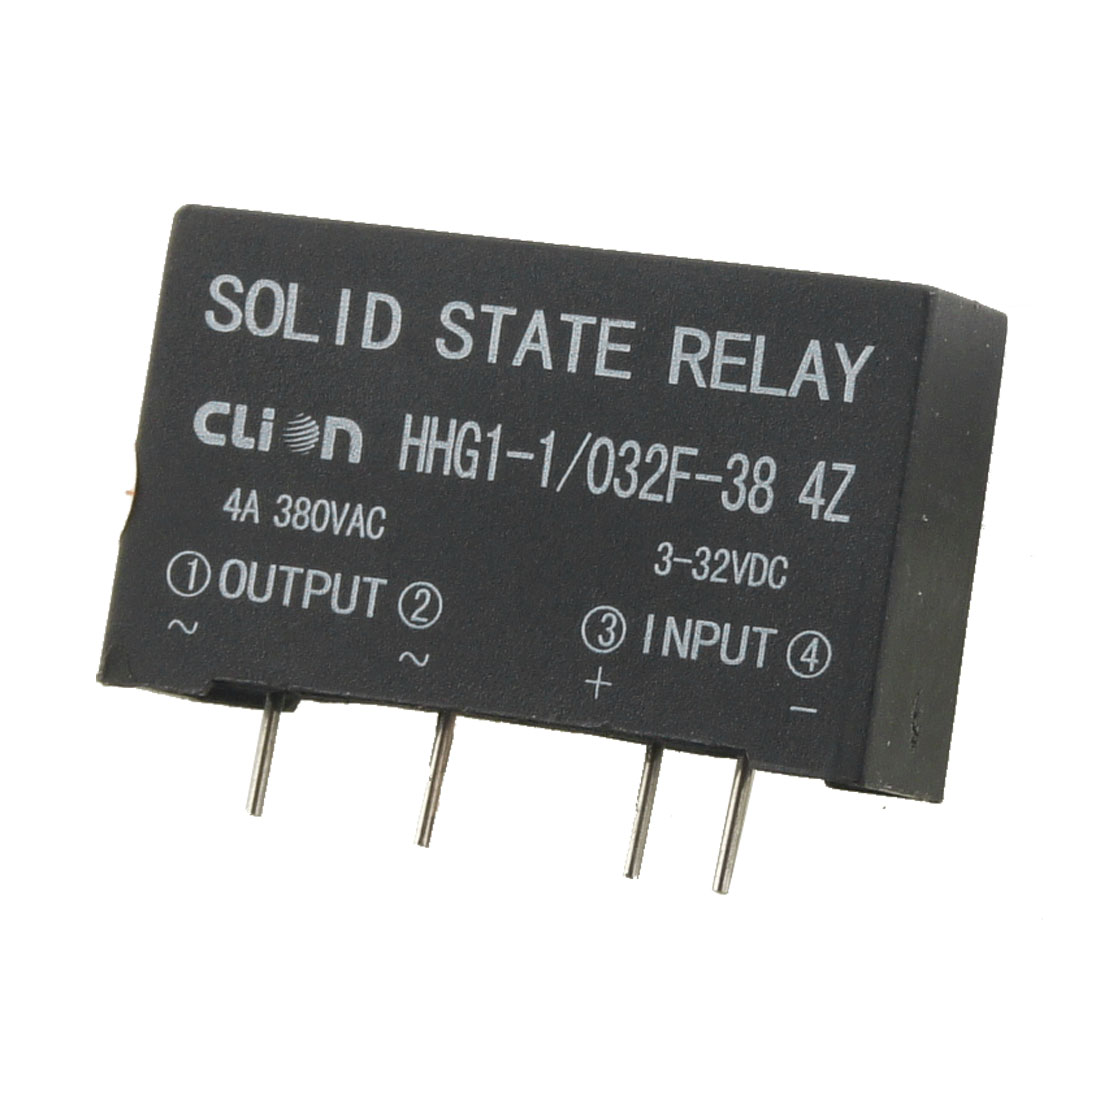 HHG1-1/032F-38 4Z in 3-32V DC Out 380V AC 4A PCB Solid State Relay